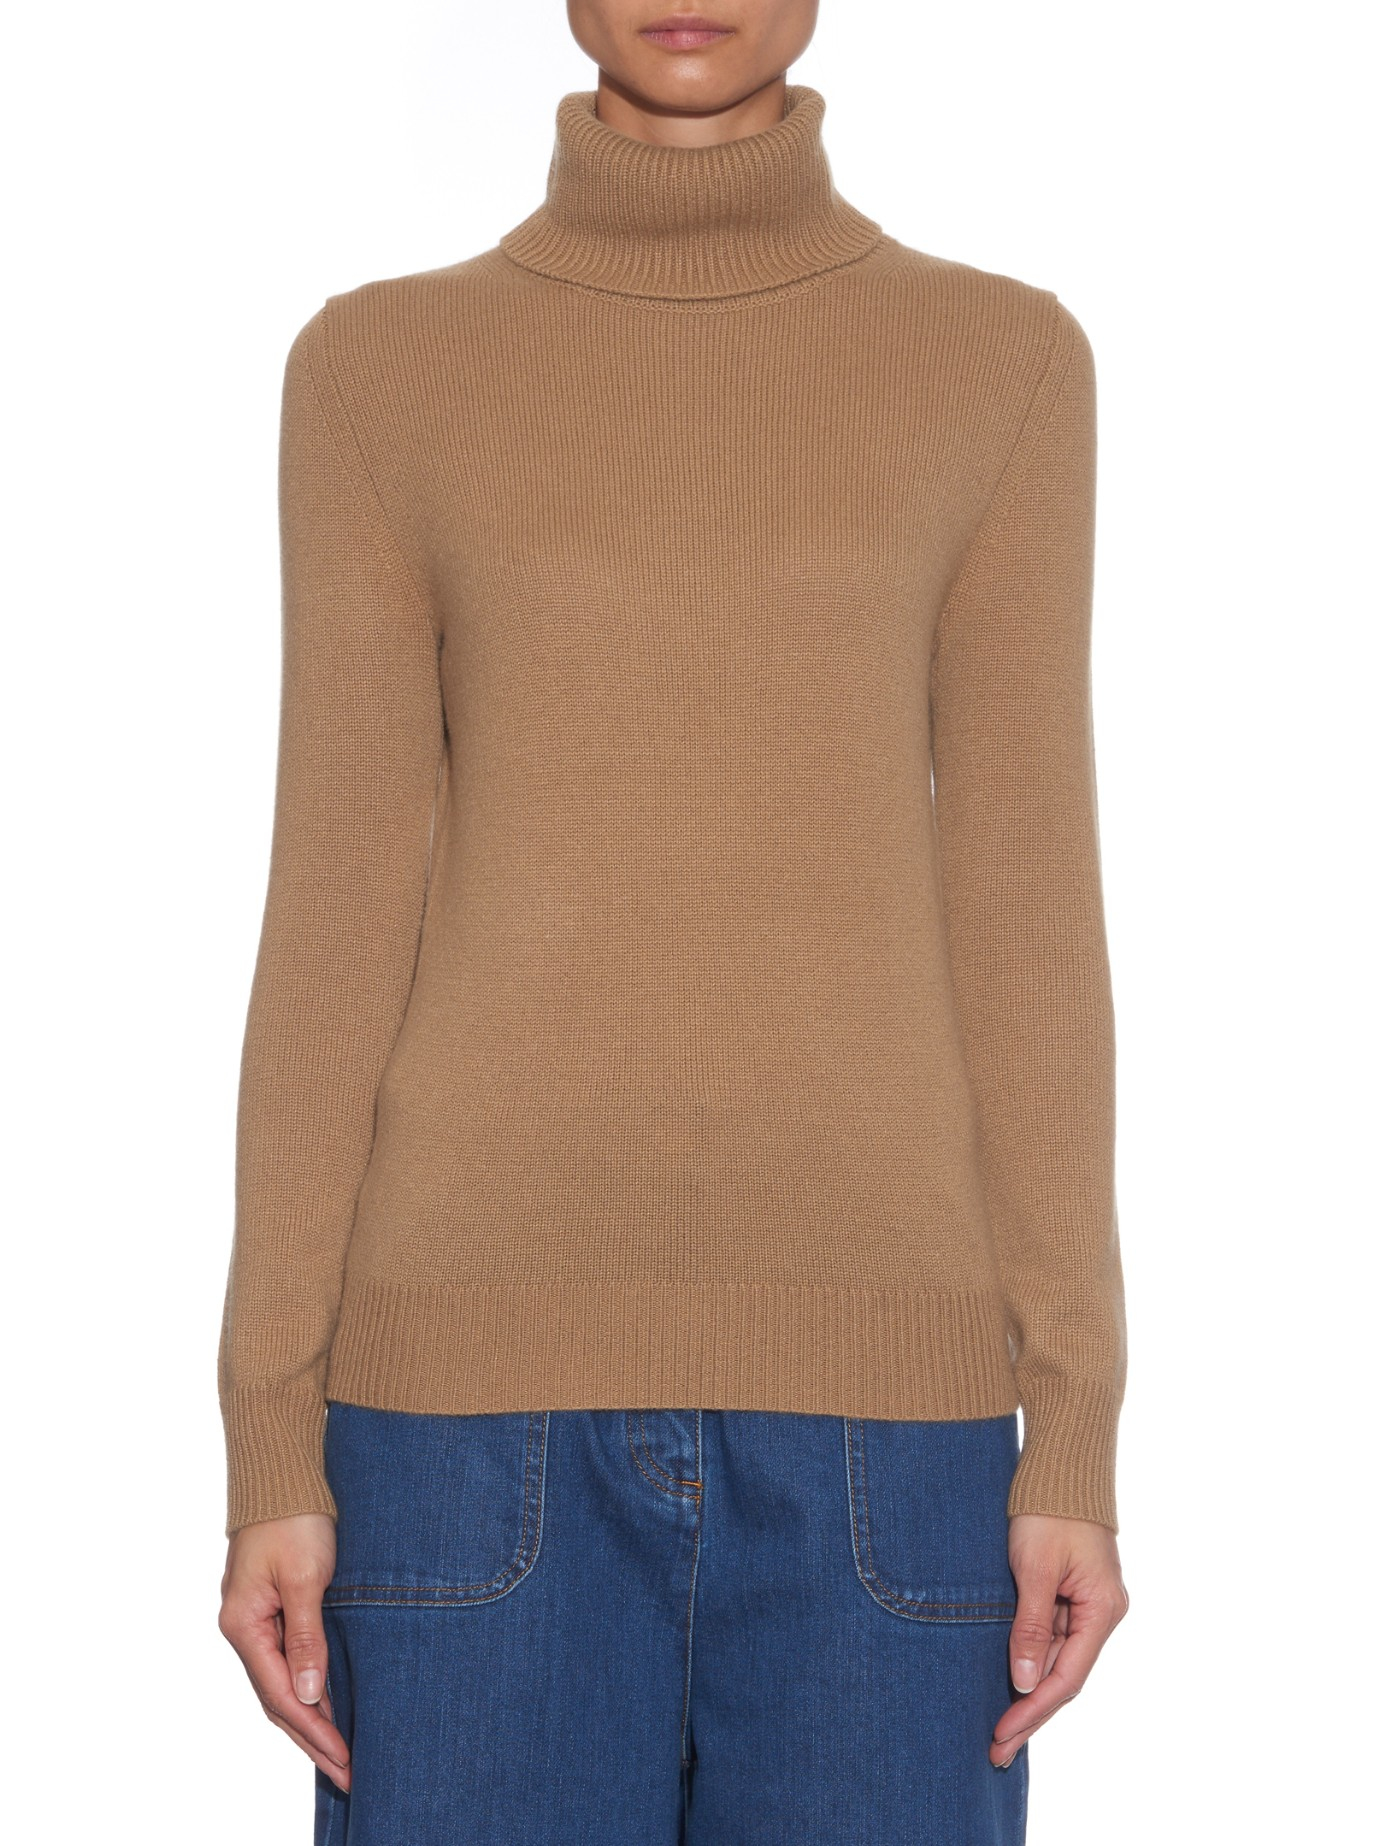 Chloé Roll-neck Cashmere Sweater in Brown | Lyst